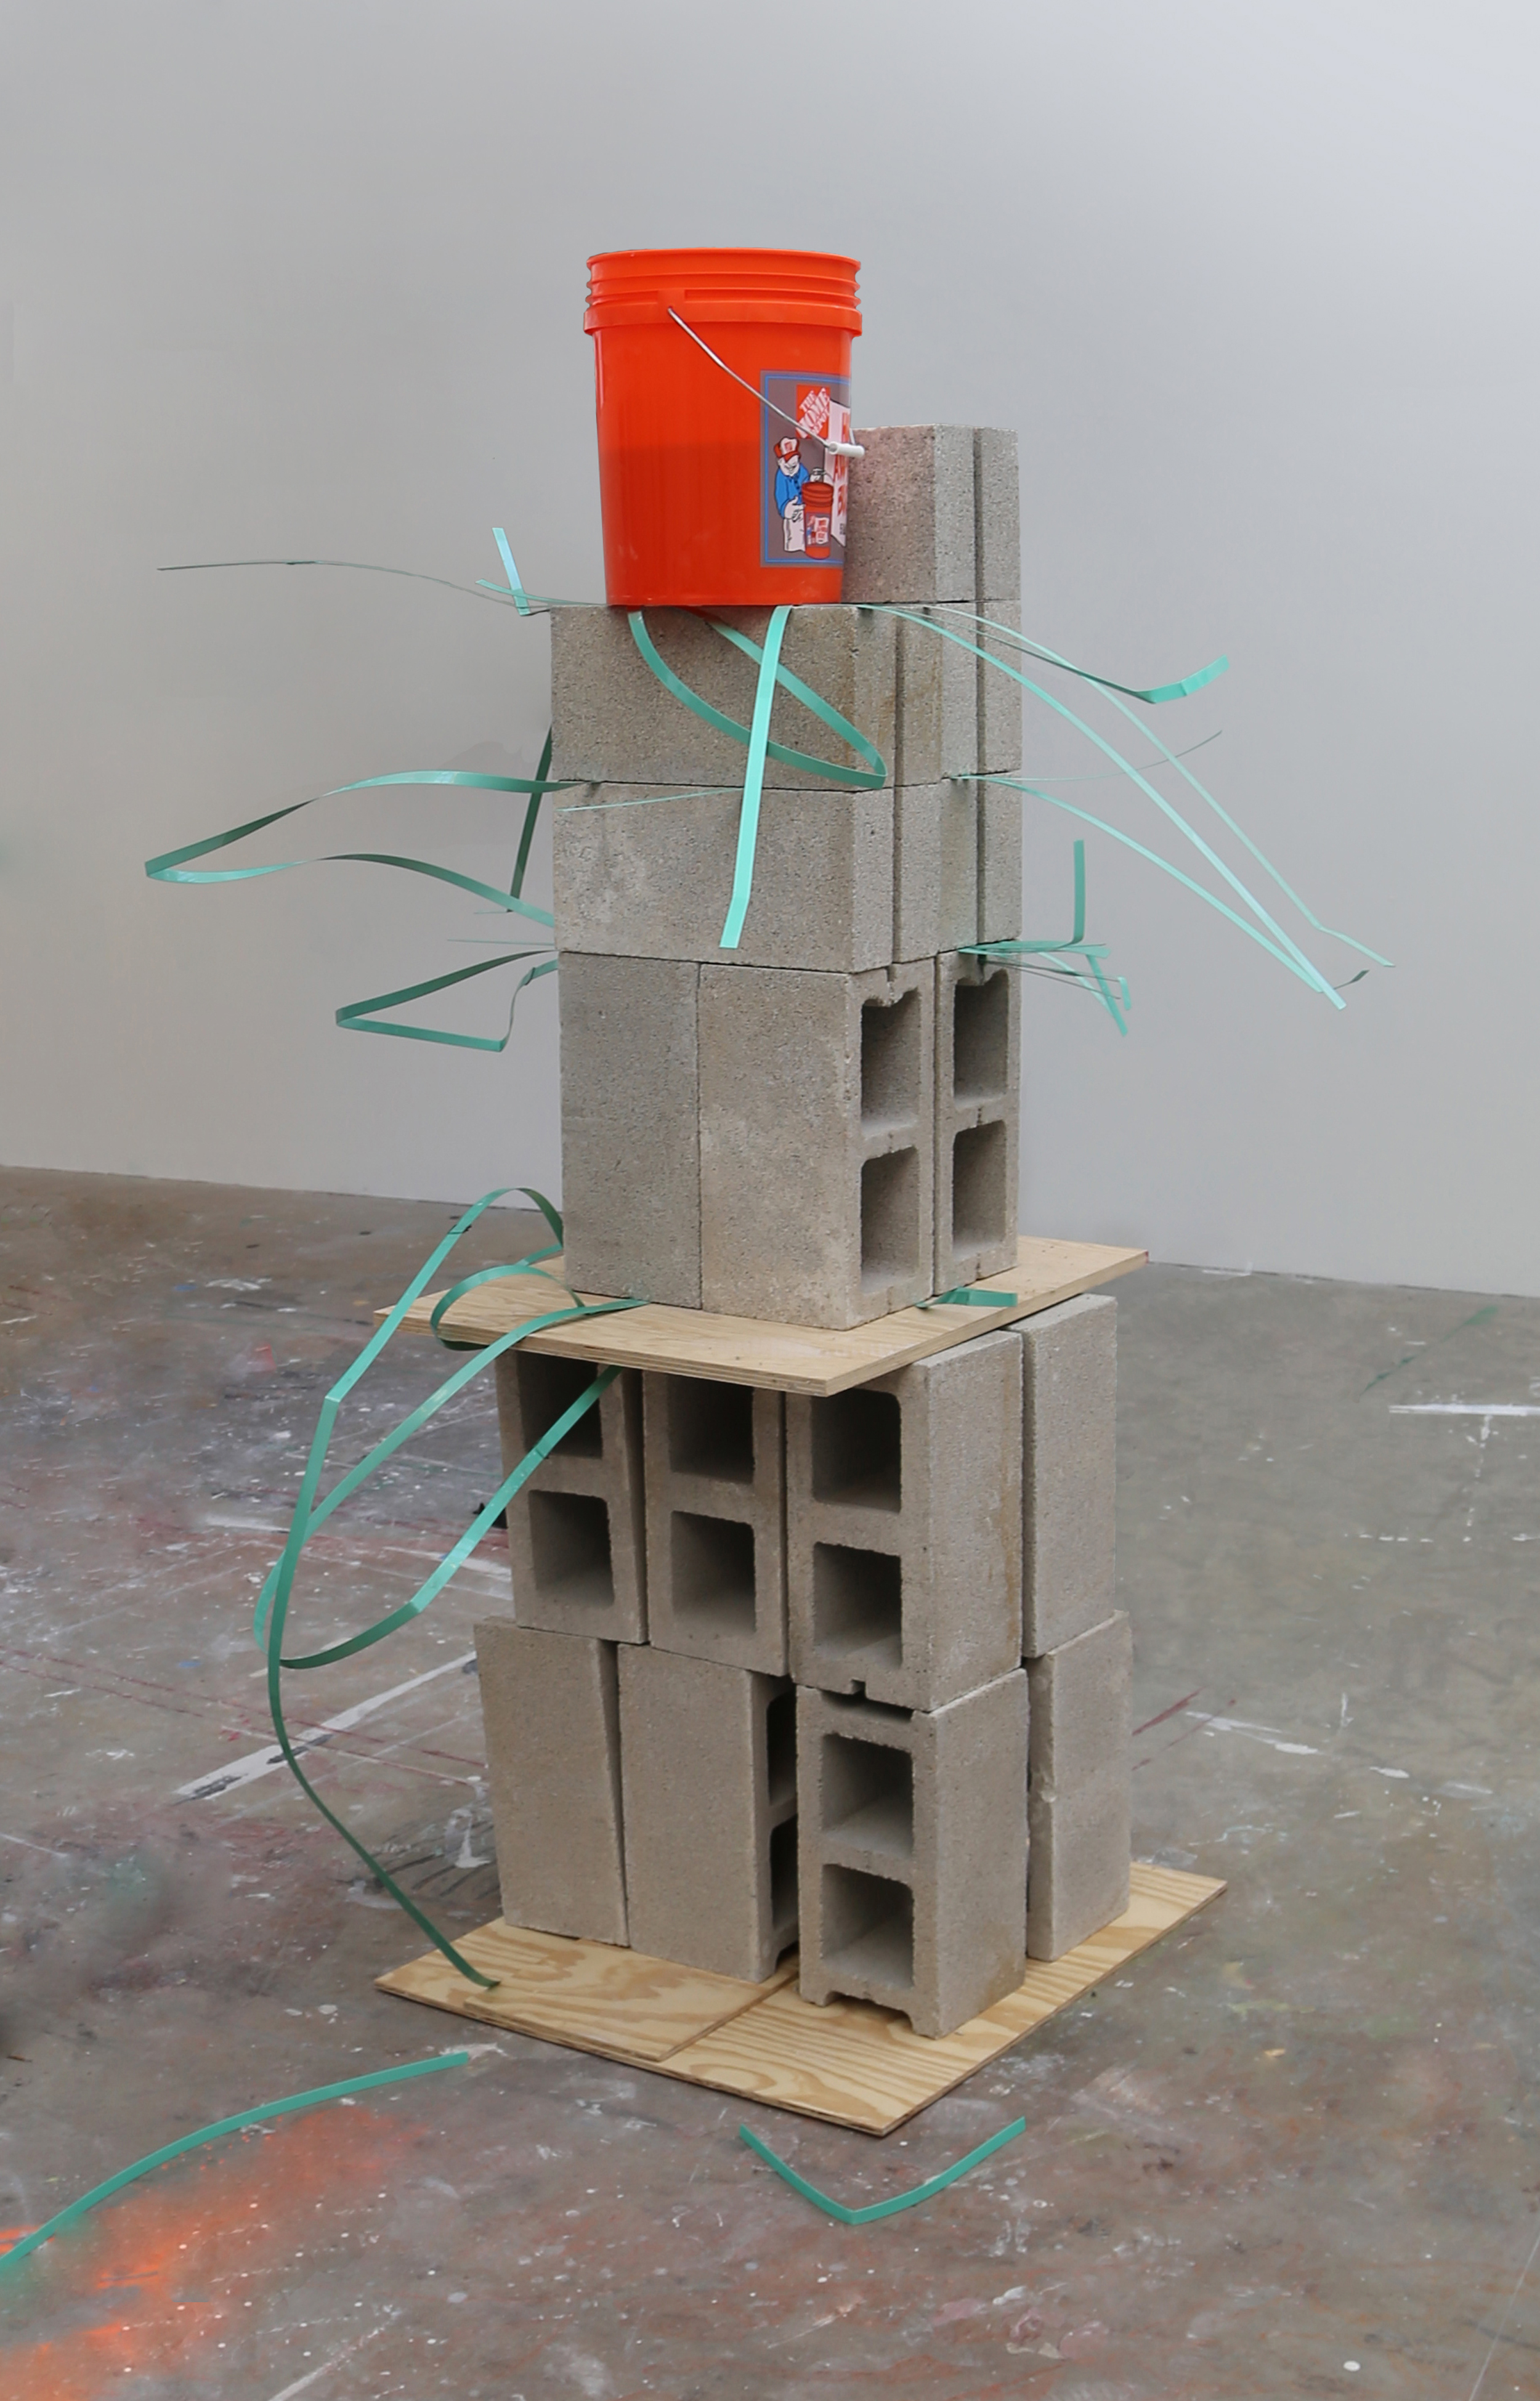 Untitled, 5' x 5' x 9', bucket, concrete masonry units, plywood, plastic palette straps